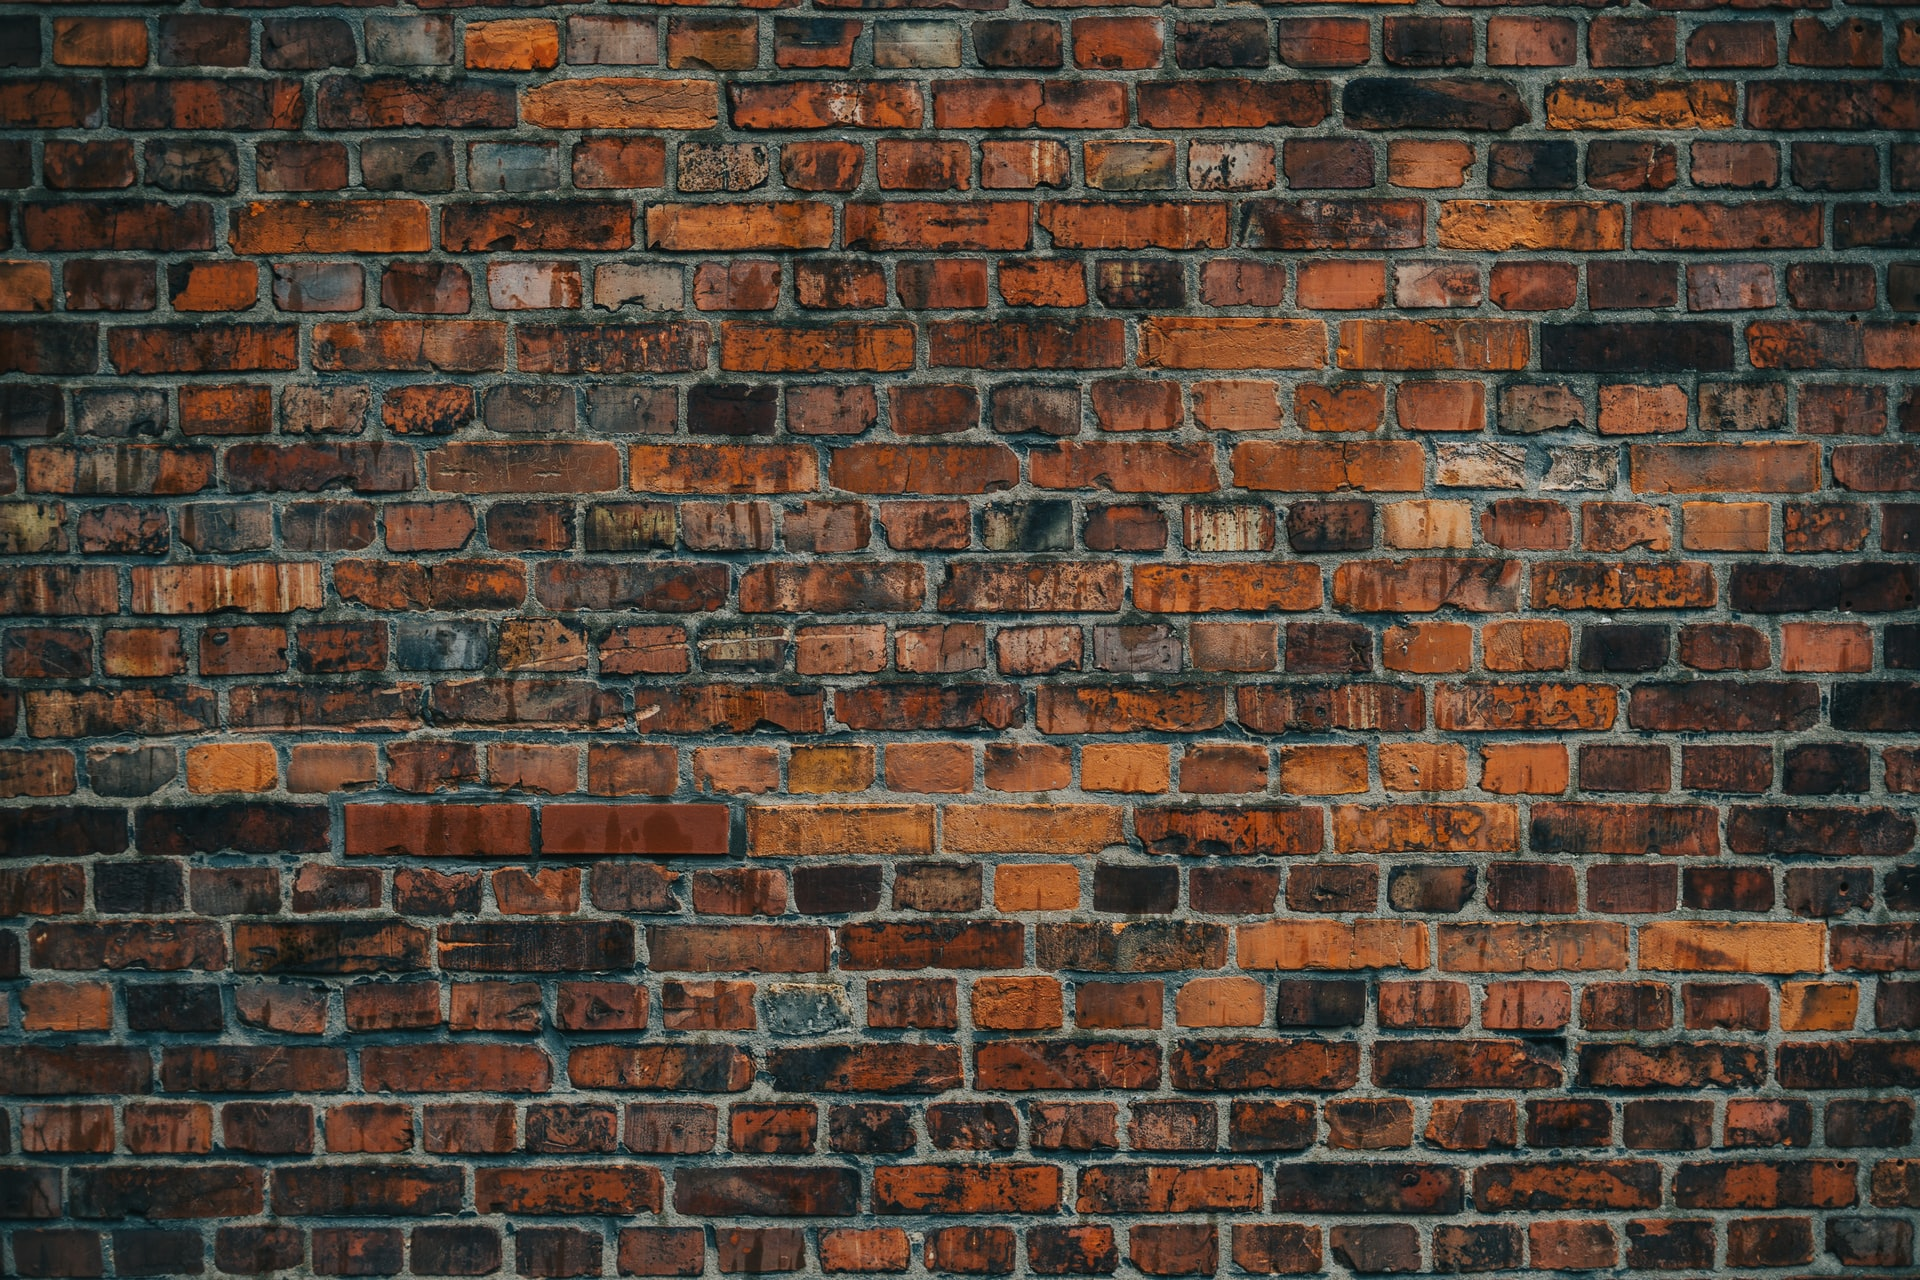 Our Stories Podcast: In with the Bricks